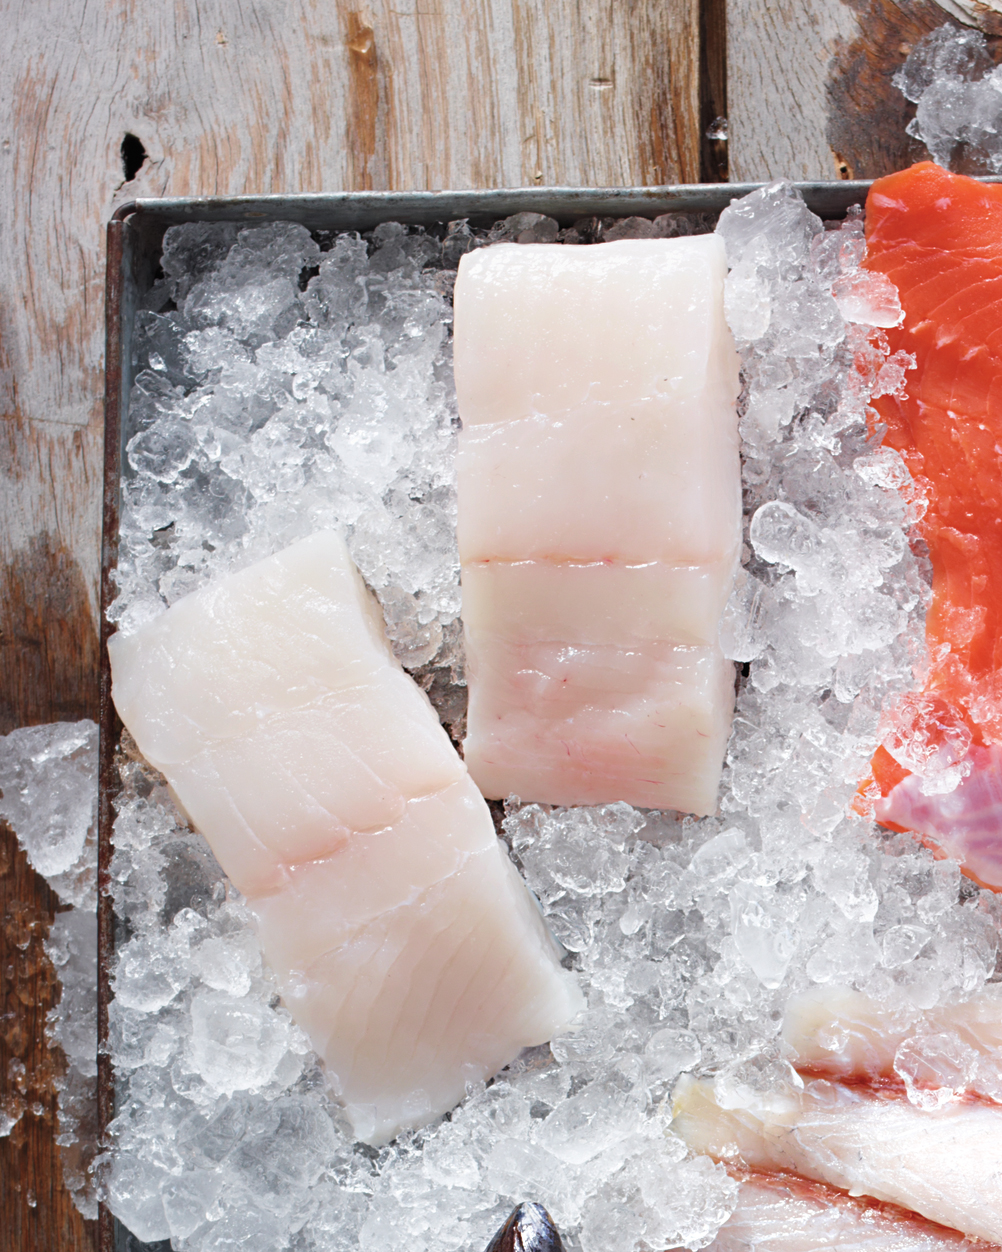 How to Shop For, Store, and Prepare Seafood